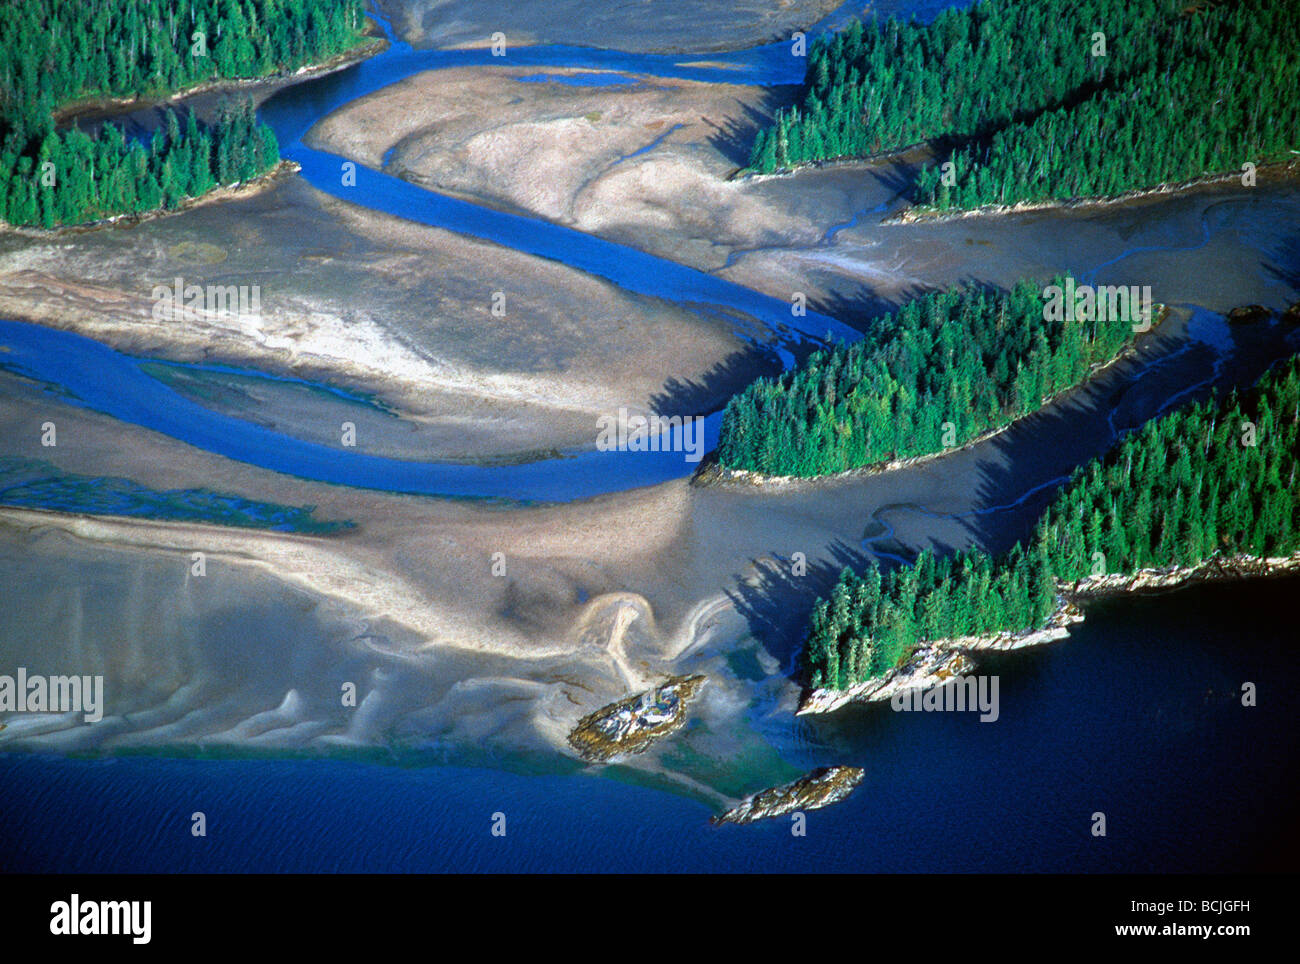 aerial view river delta stockfotos aerial view river delta bilder alamy. Black Bedroom Furniture Sets. Home Design Ideas